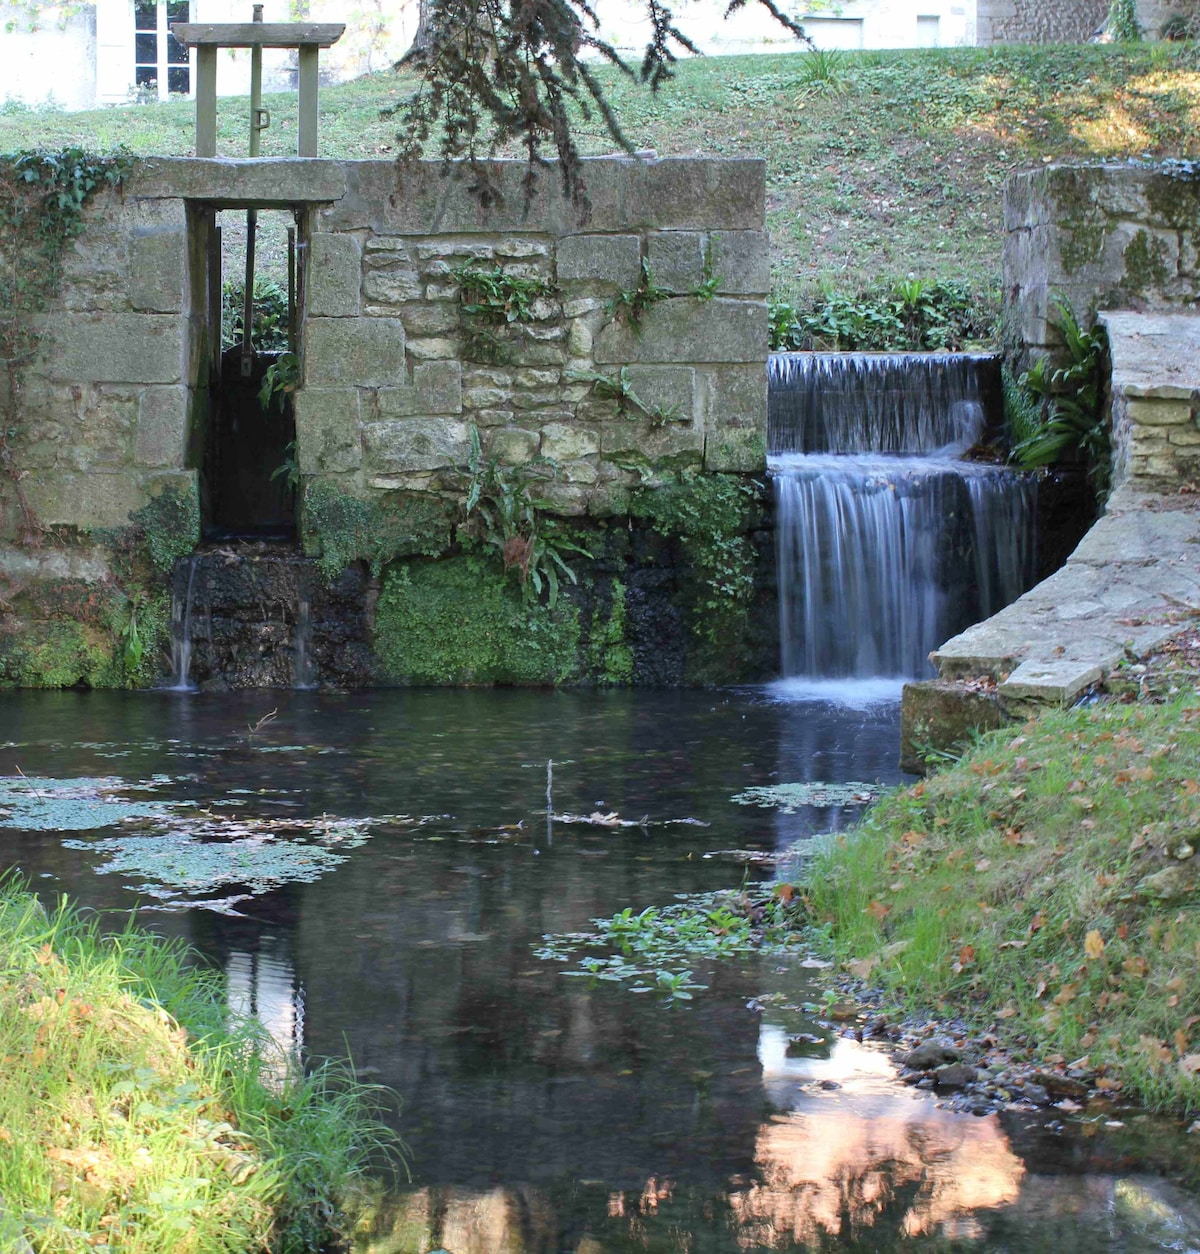 The leat/mill race